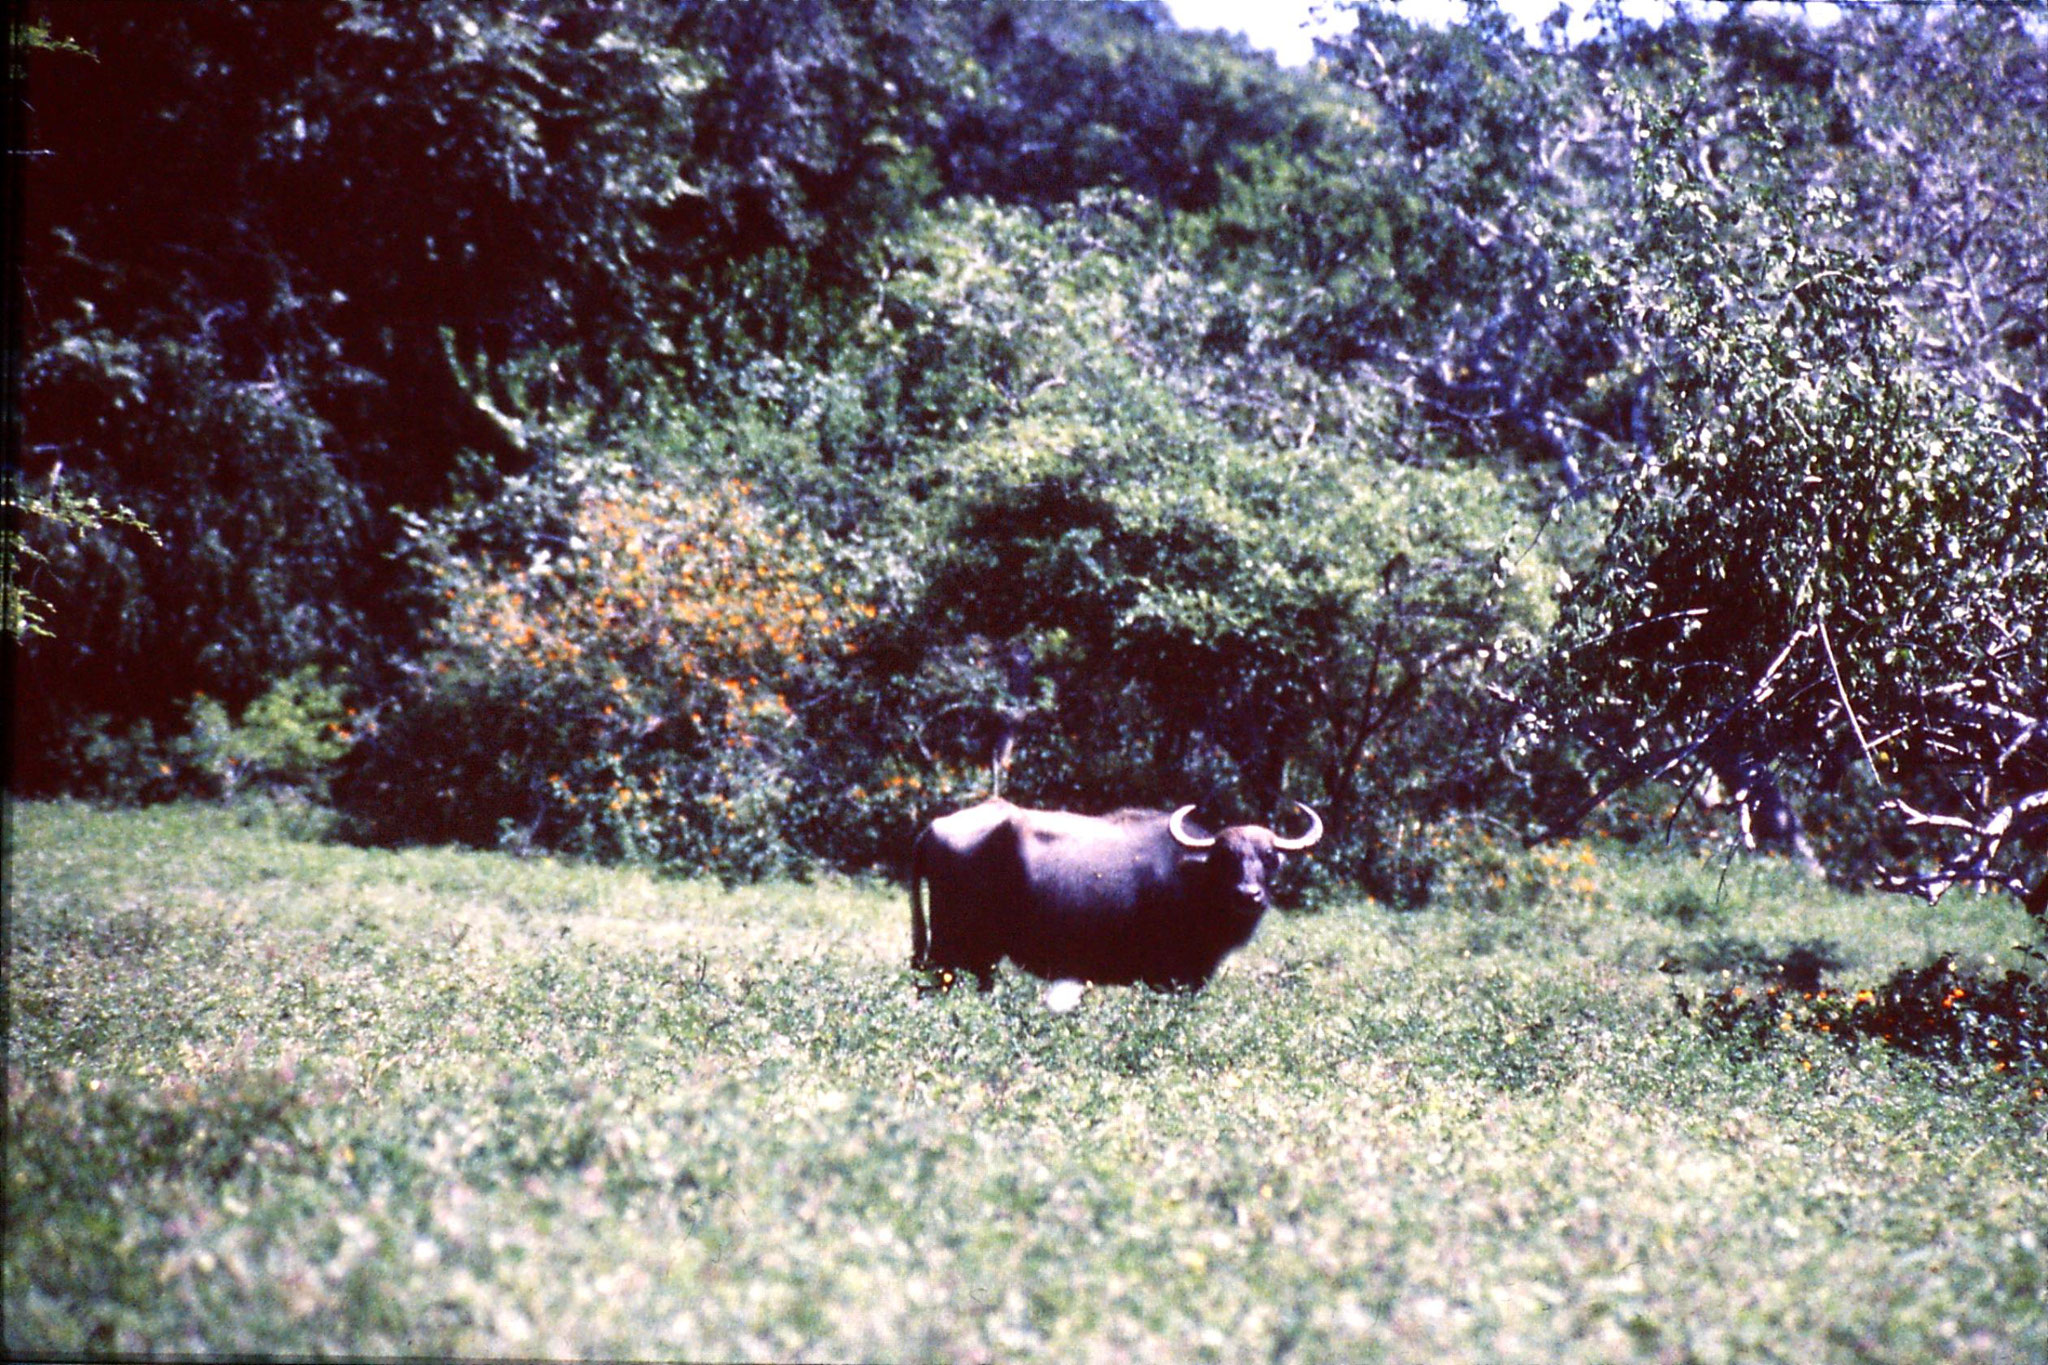 27/1/1989: 21: Yala National Park